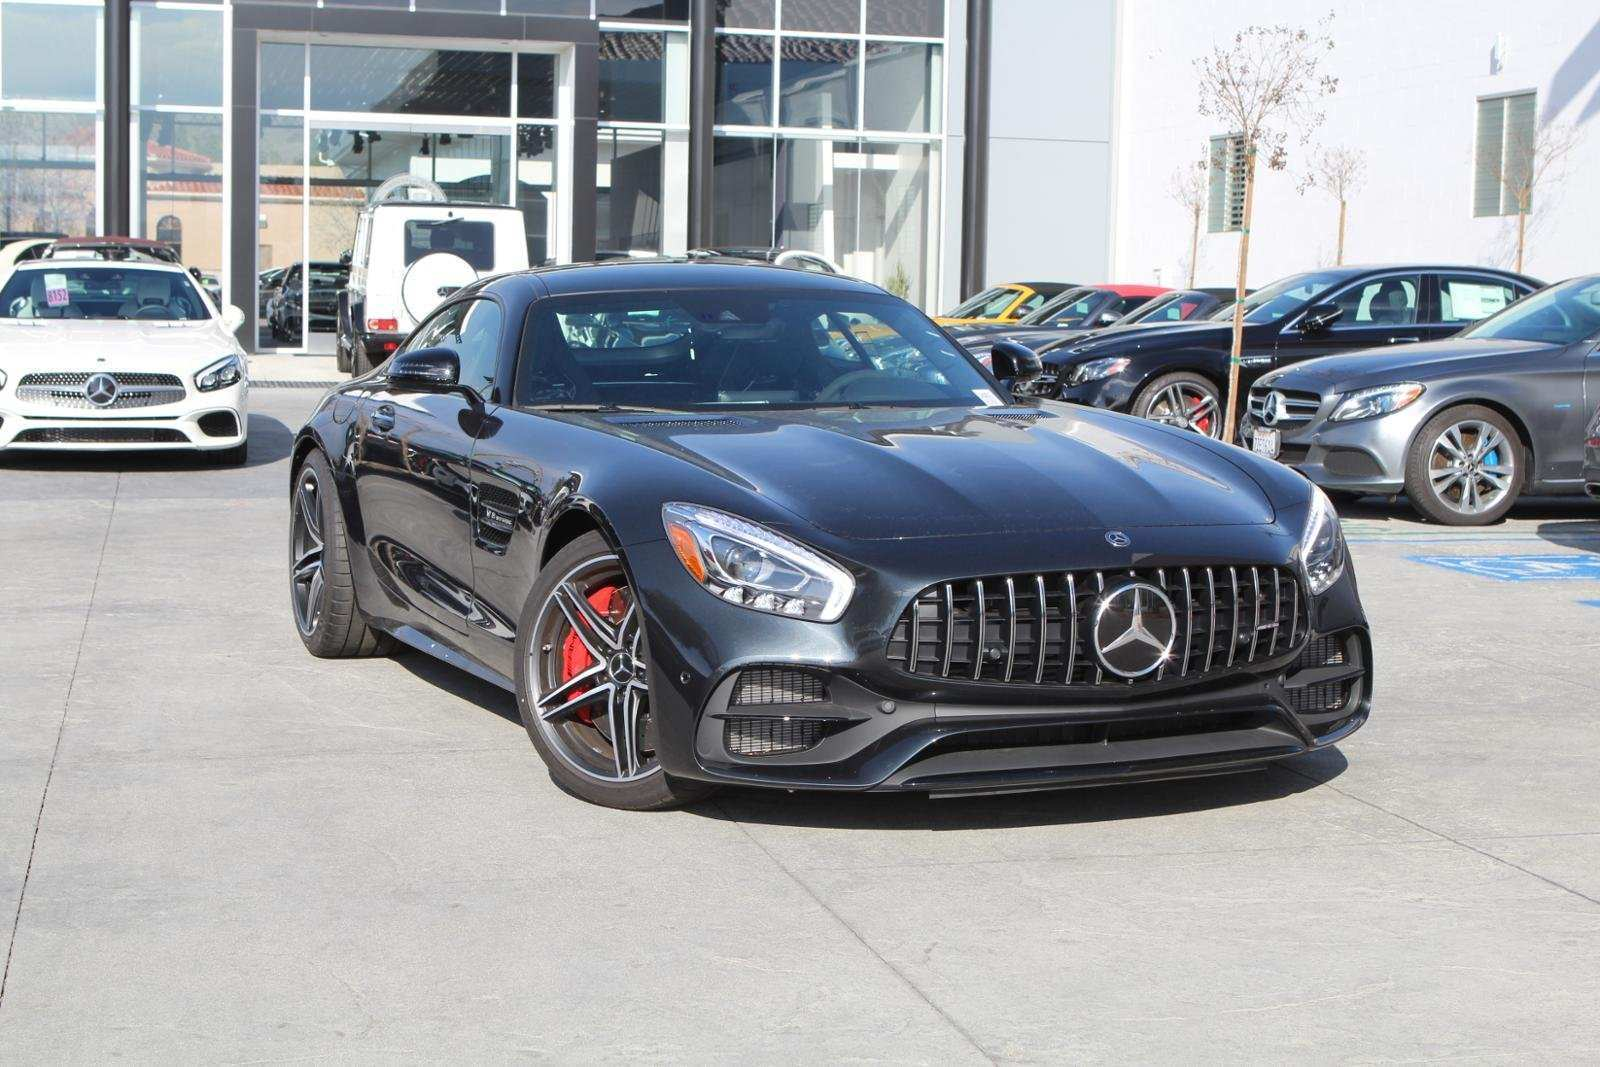 91 The Best 2019 Mercedes AMG GT Price Design And Review